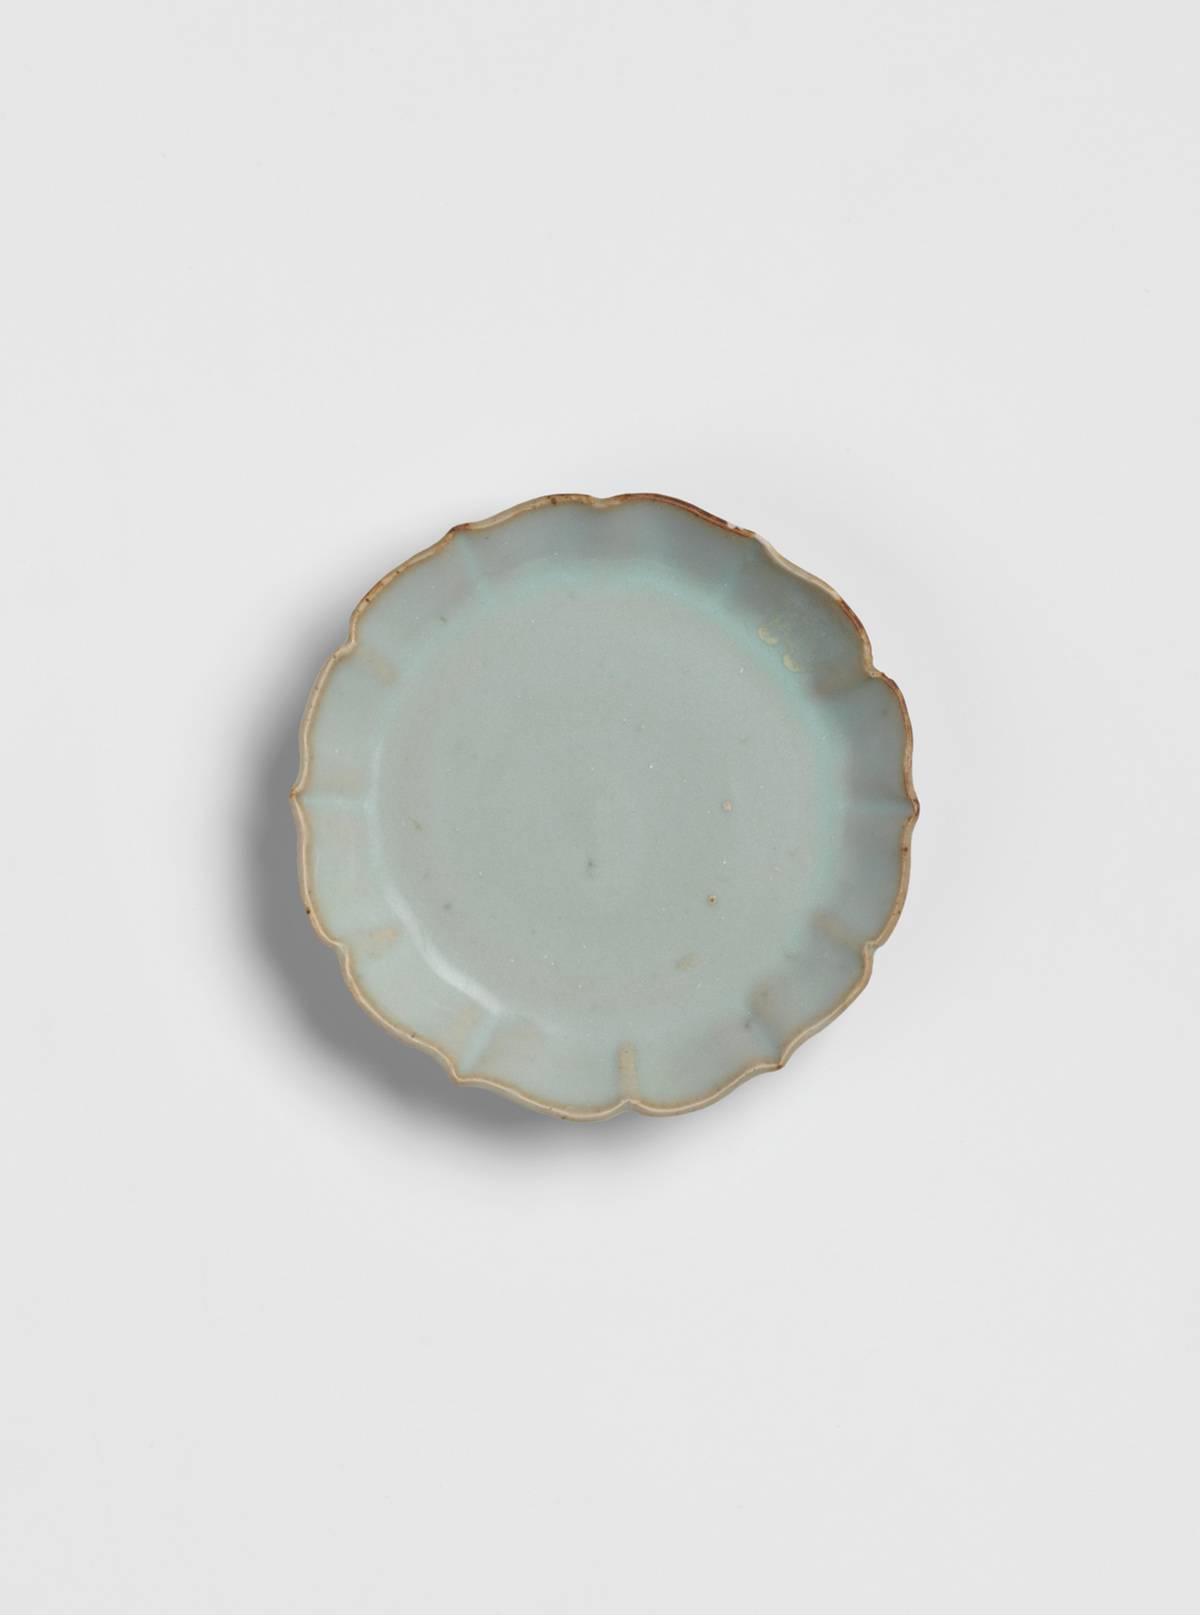 Small glazed stoneware dish with bracketed rim